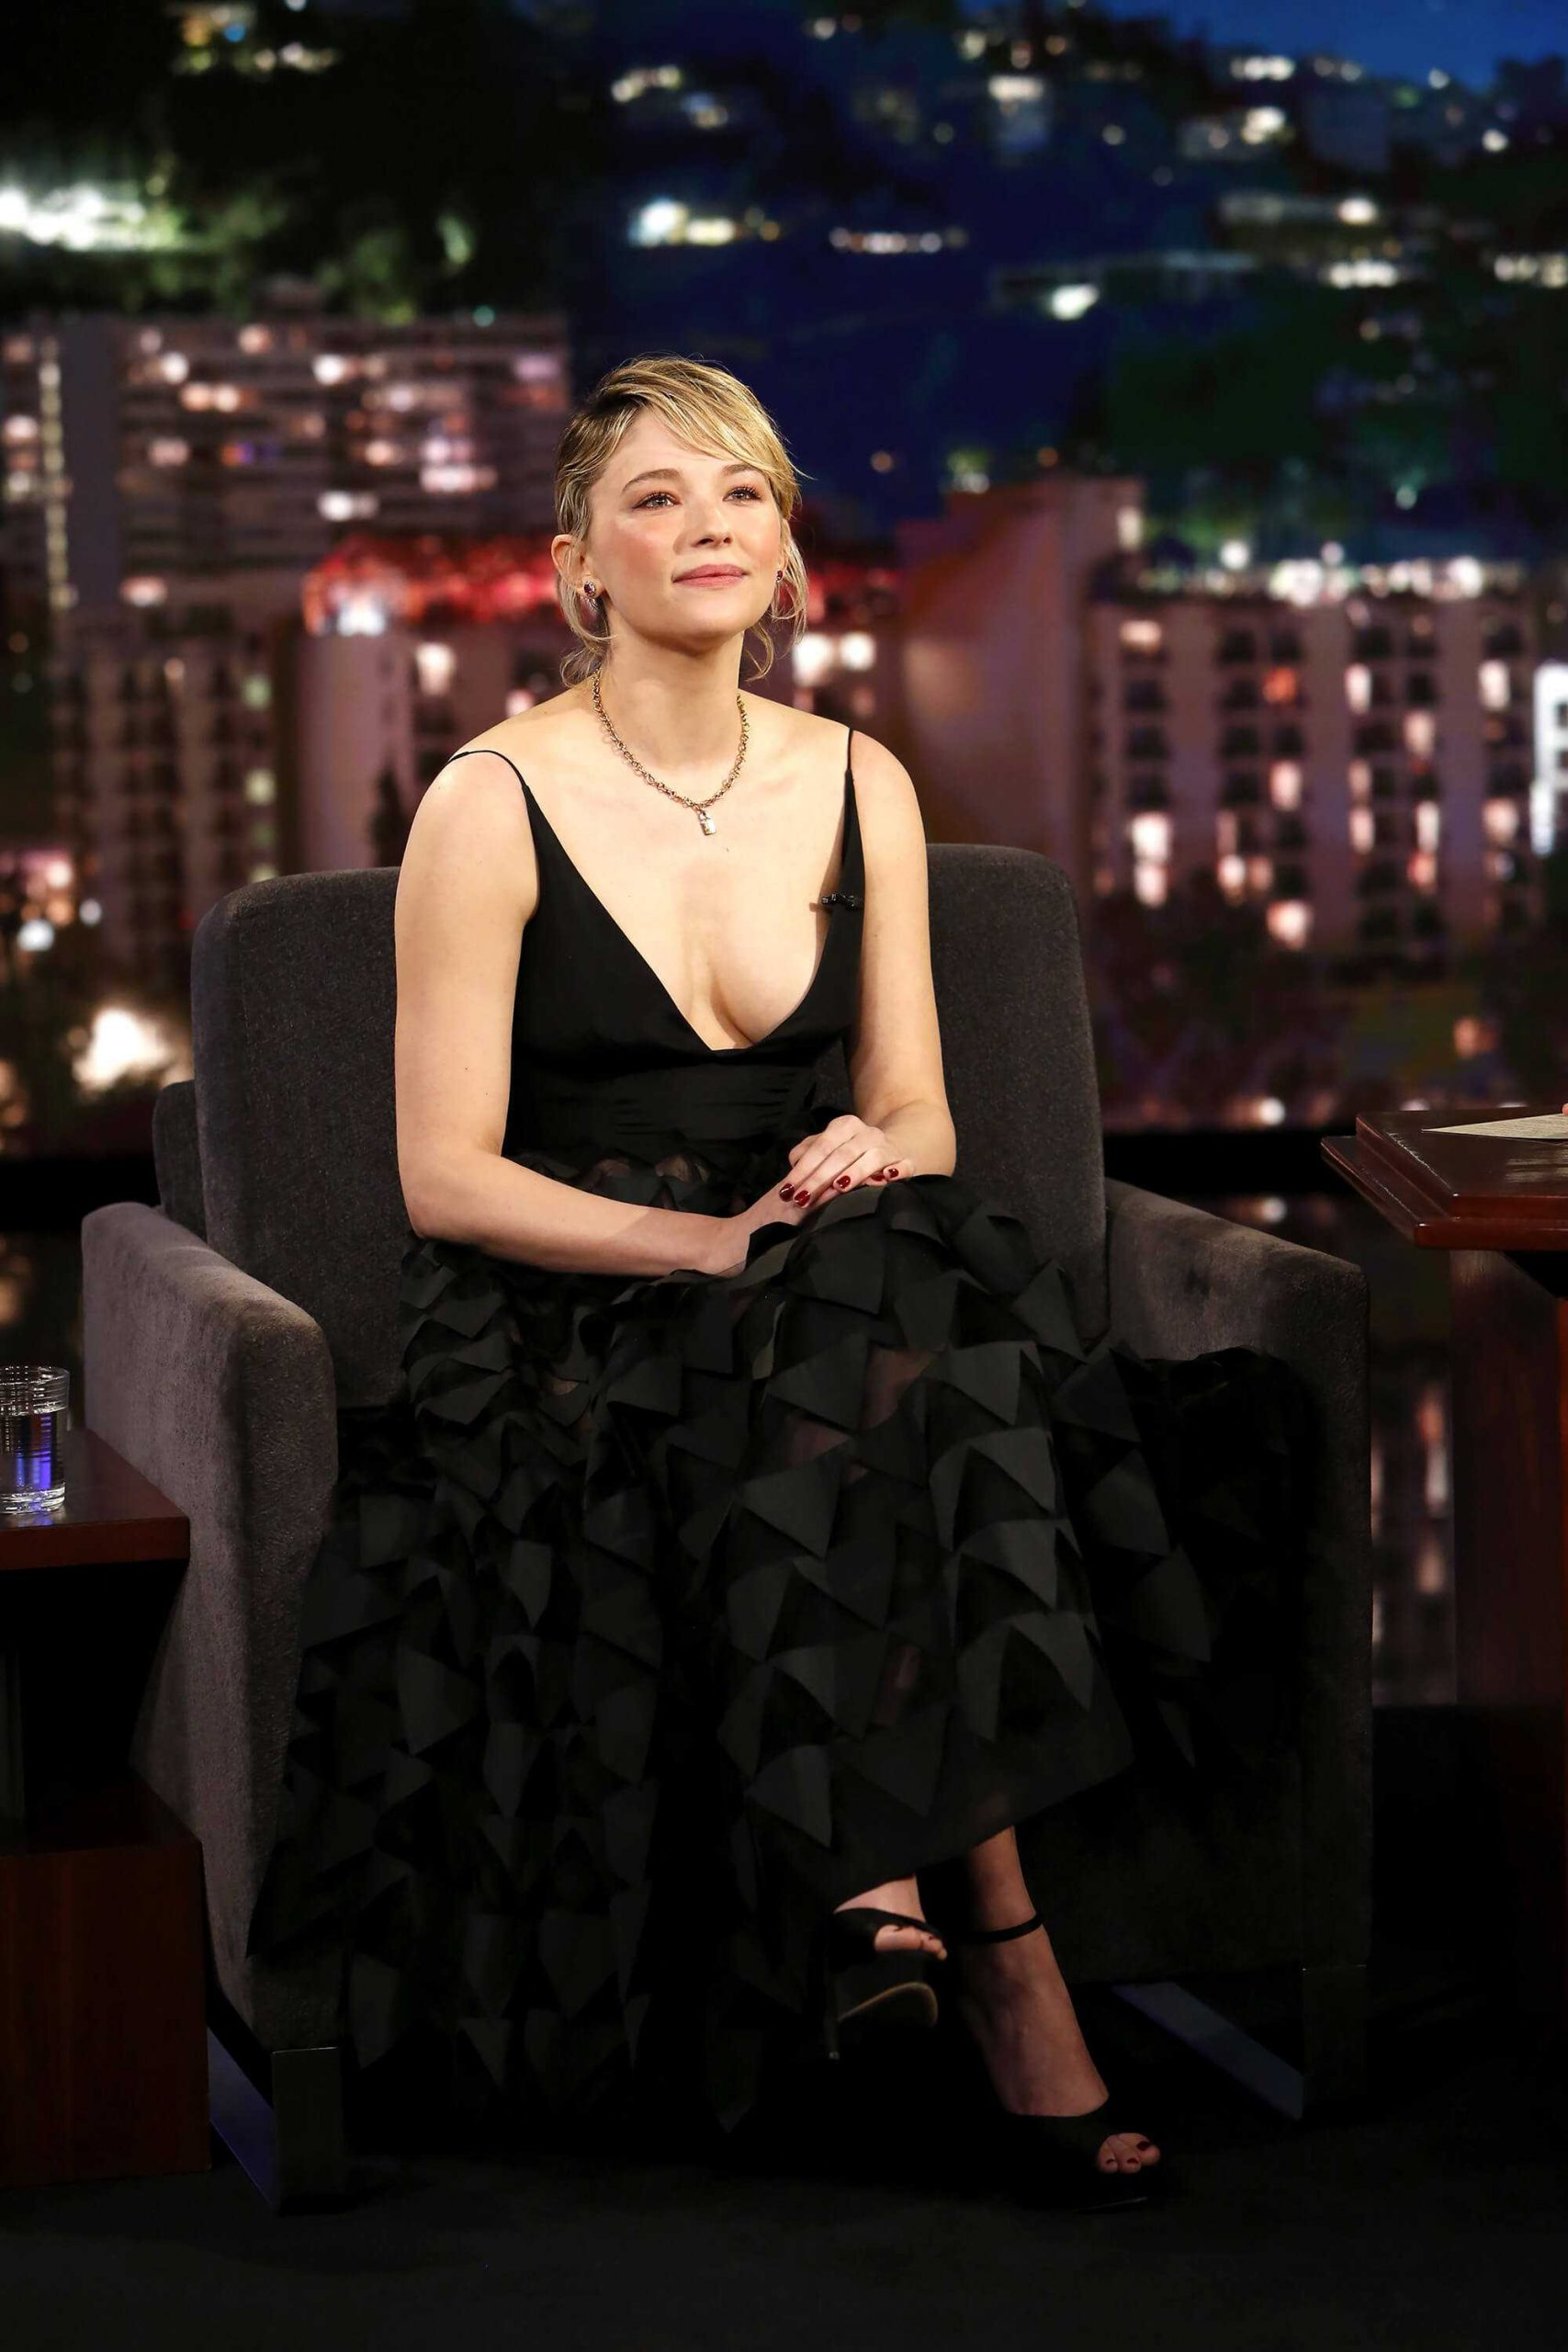 Haley Bennett hot side boobs pictures